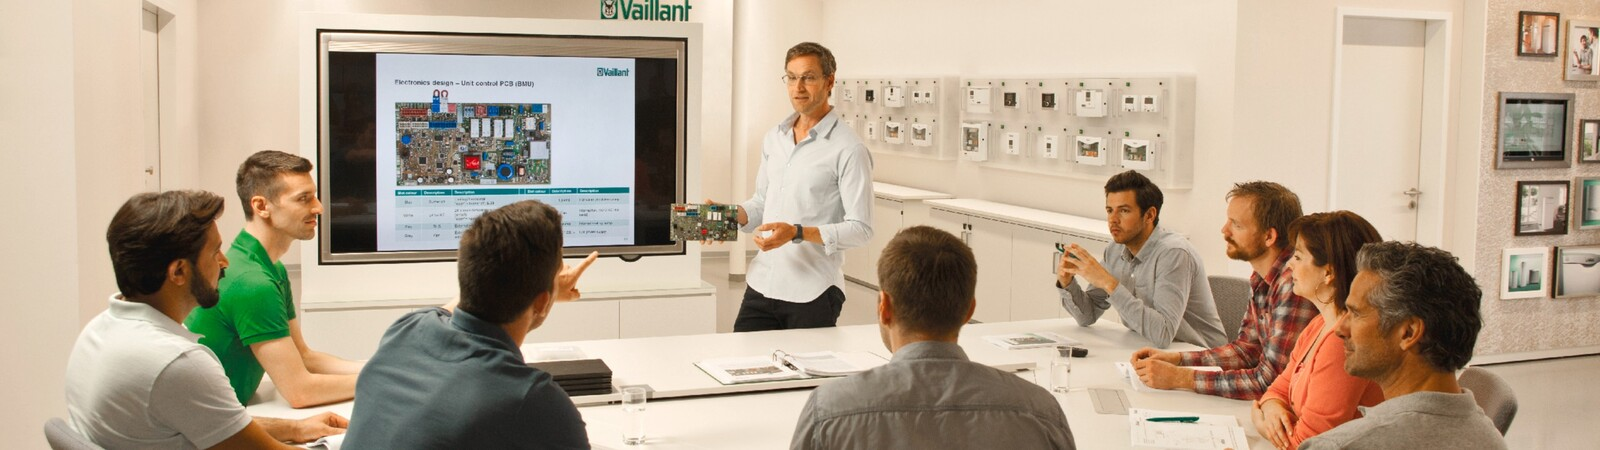 https://www.vaillant.ru/downloads/images-general/academy/prof15-43062-03-1247744-format-32-9@1600@desktop.jpg